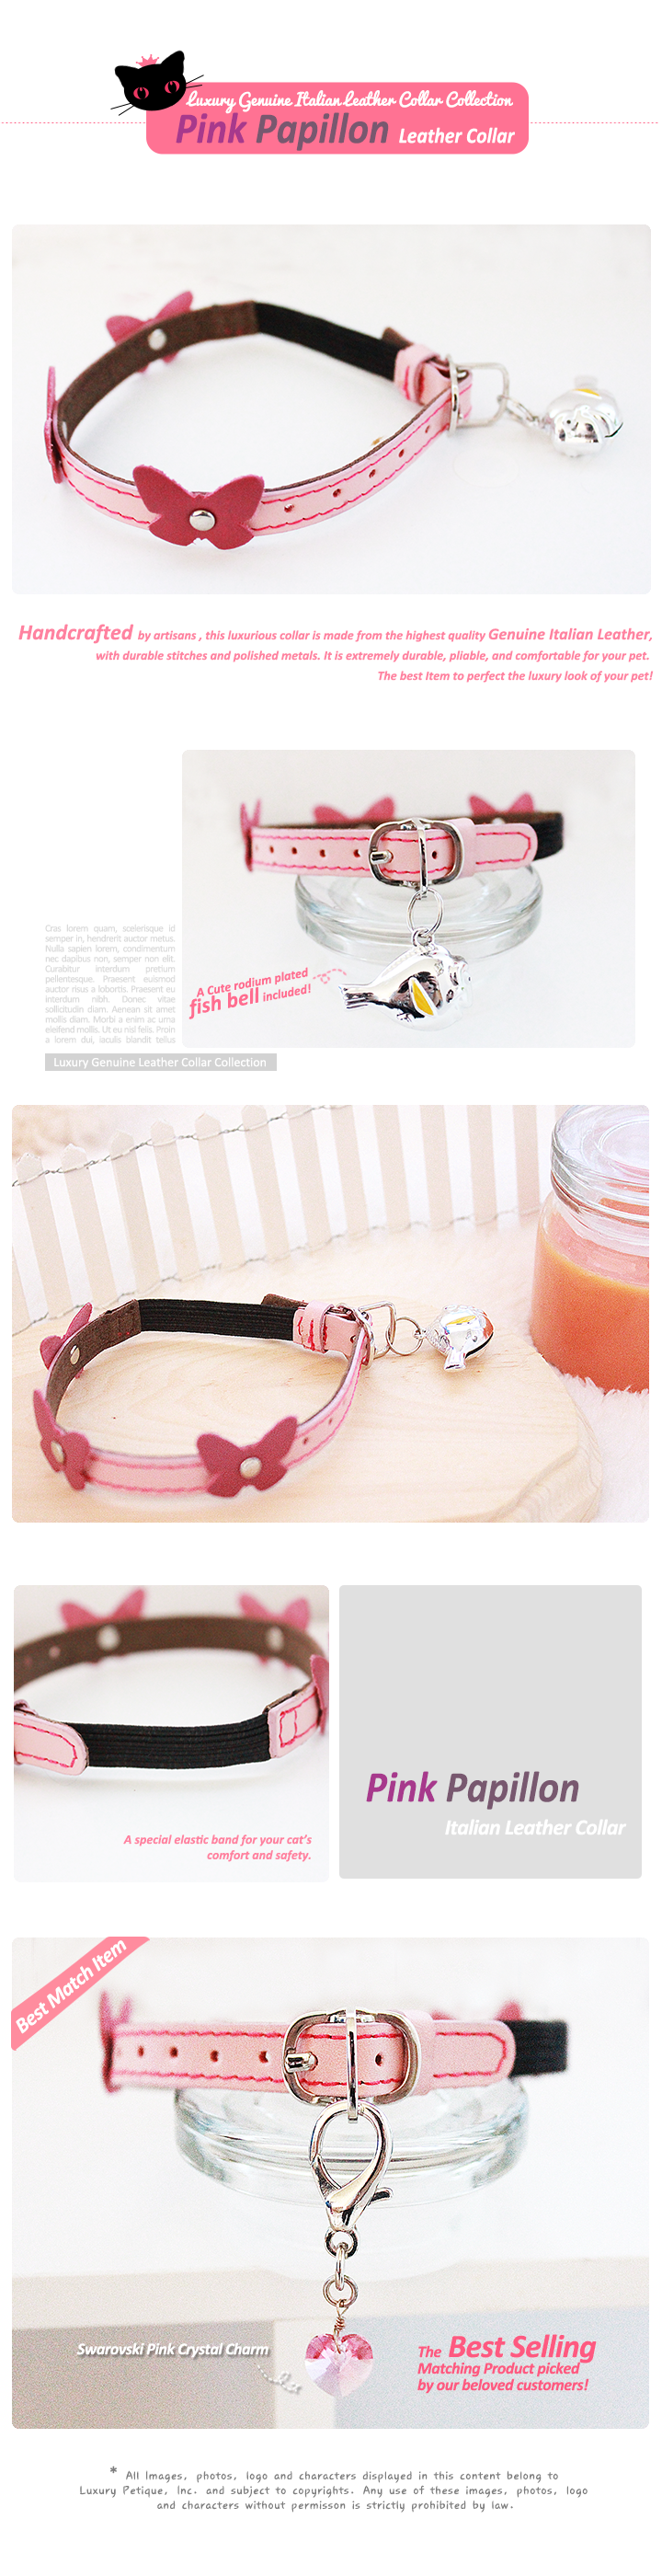 pink-papillon-cat-collar-detail.png